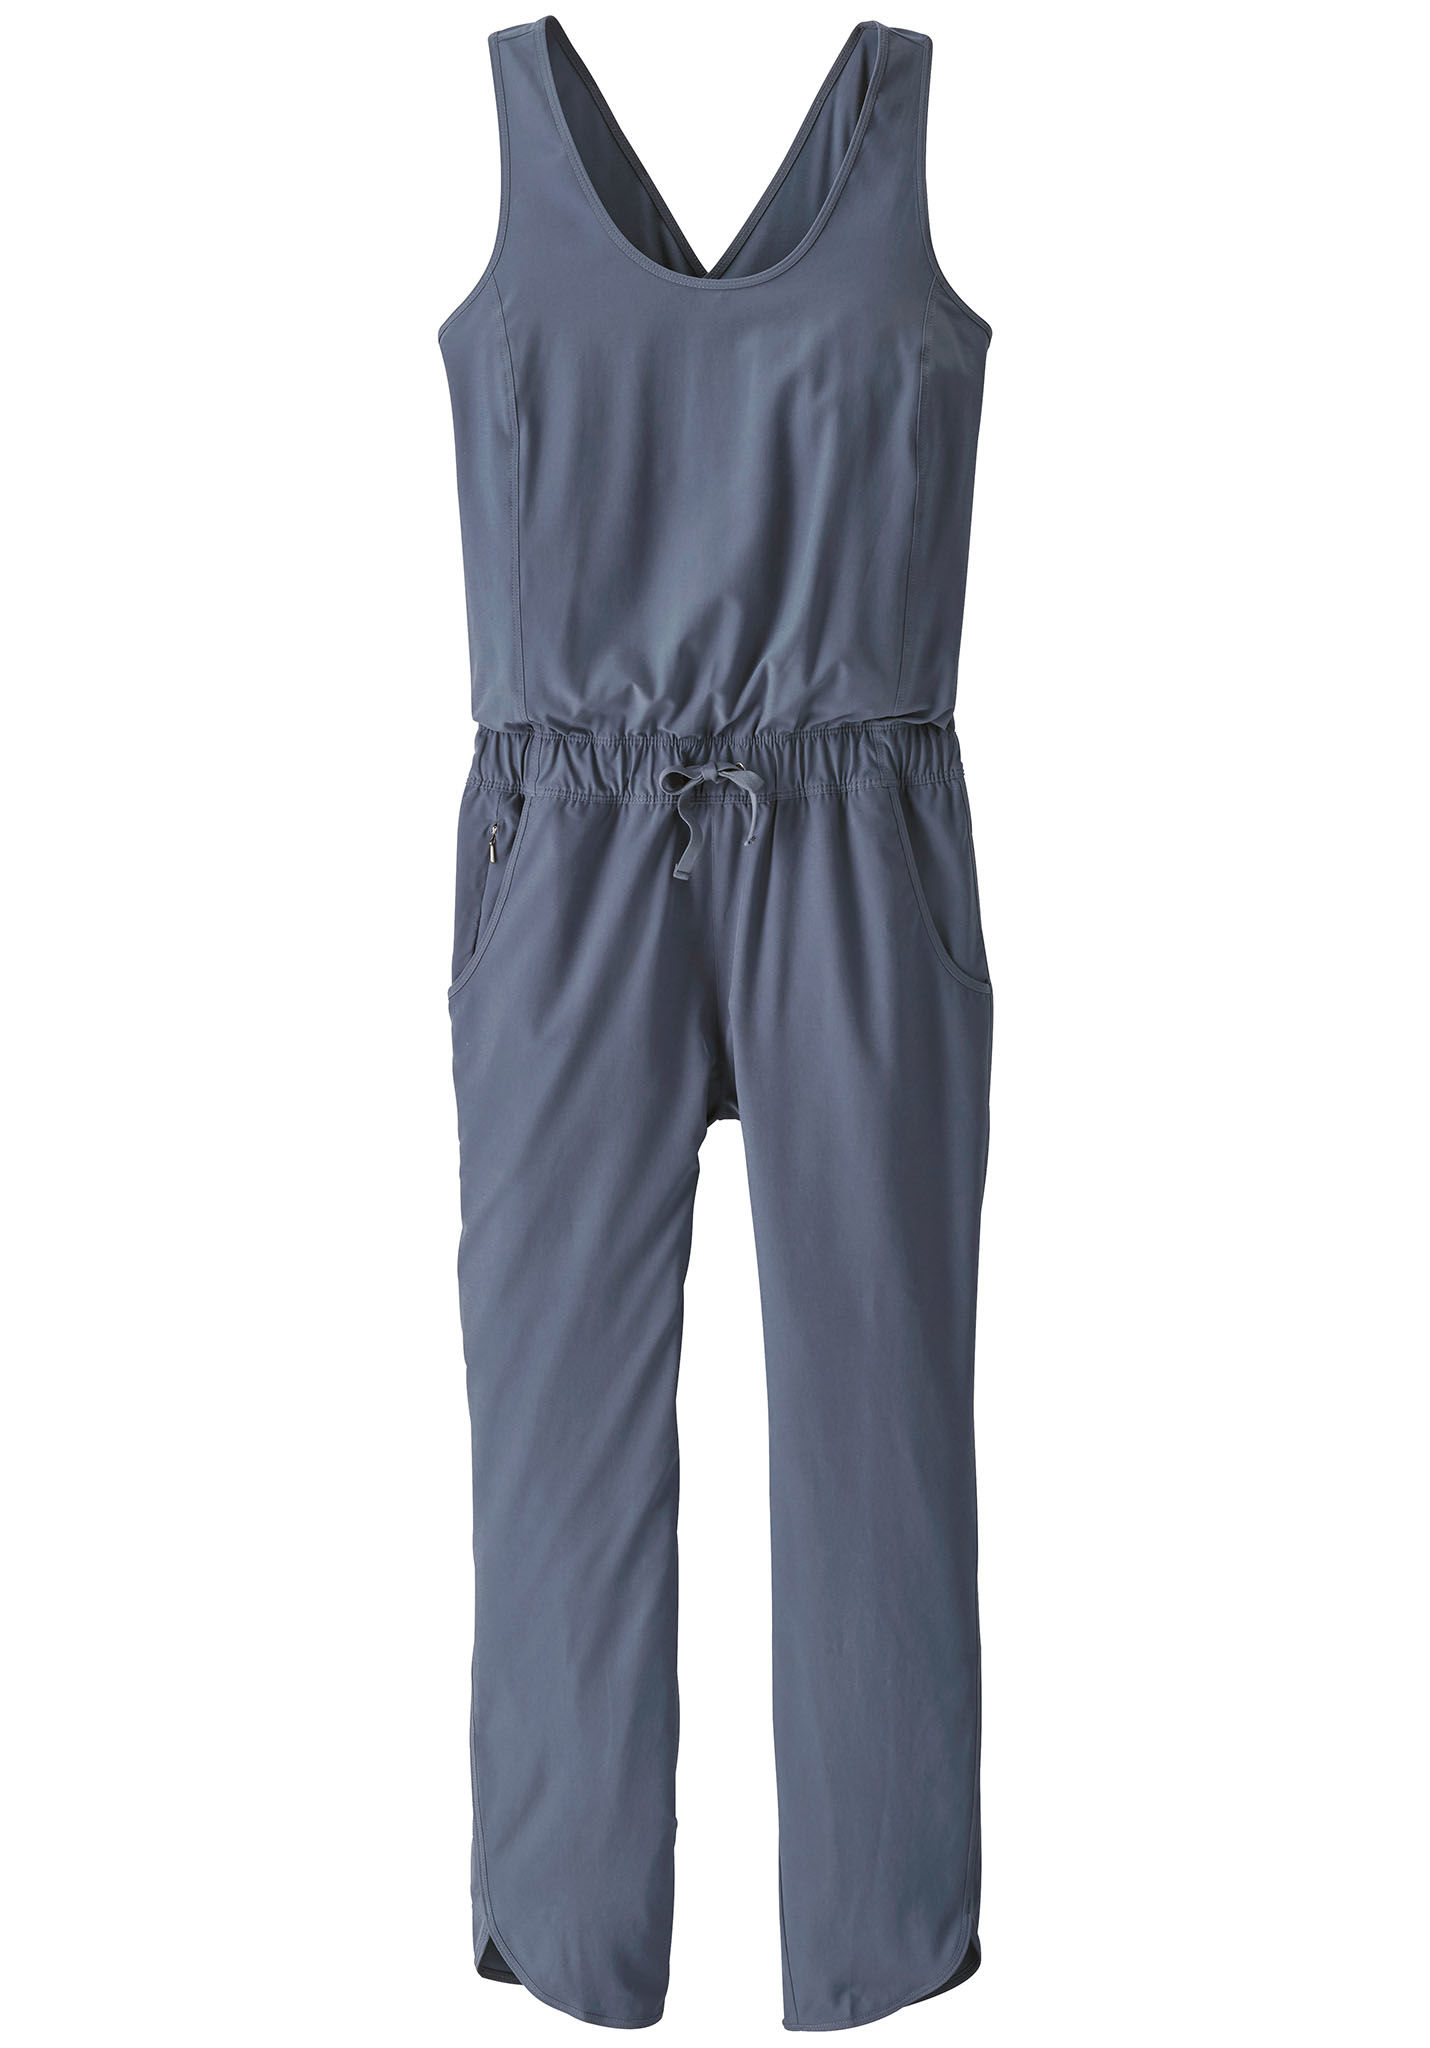 74f91e25bccf PATAGONIA Fleetwith Romper - Jumpsuit for Women - Blue - Planet Sports